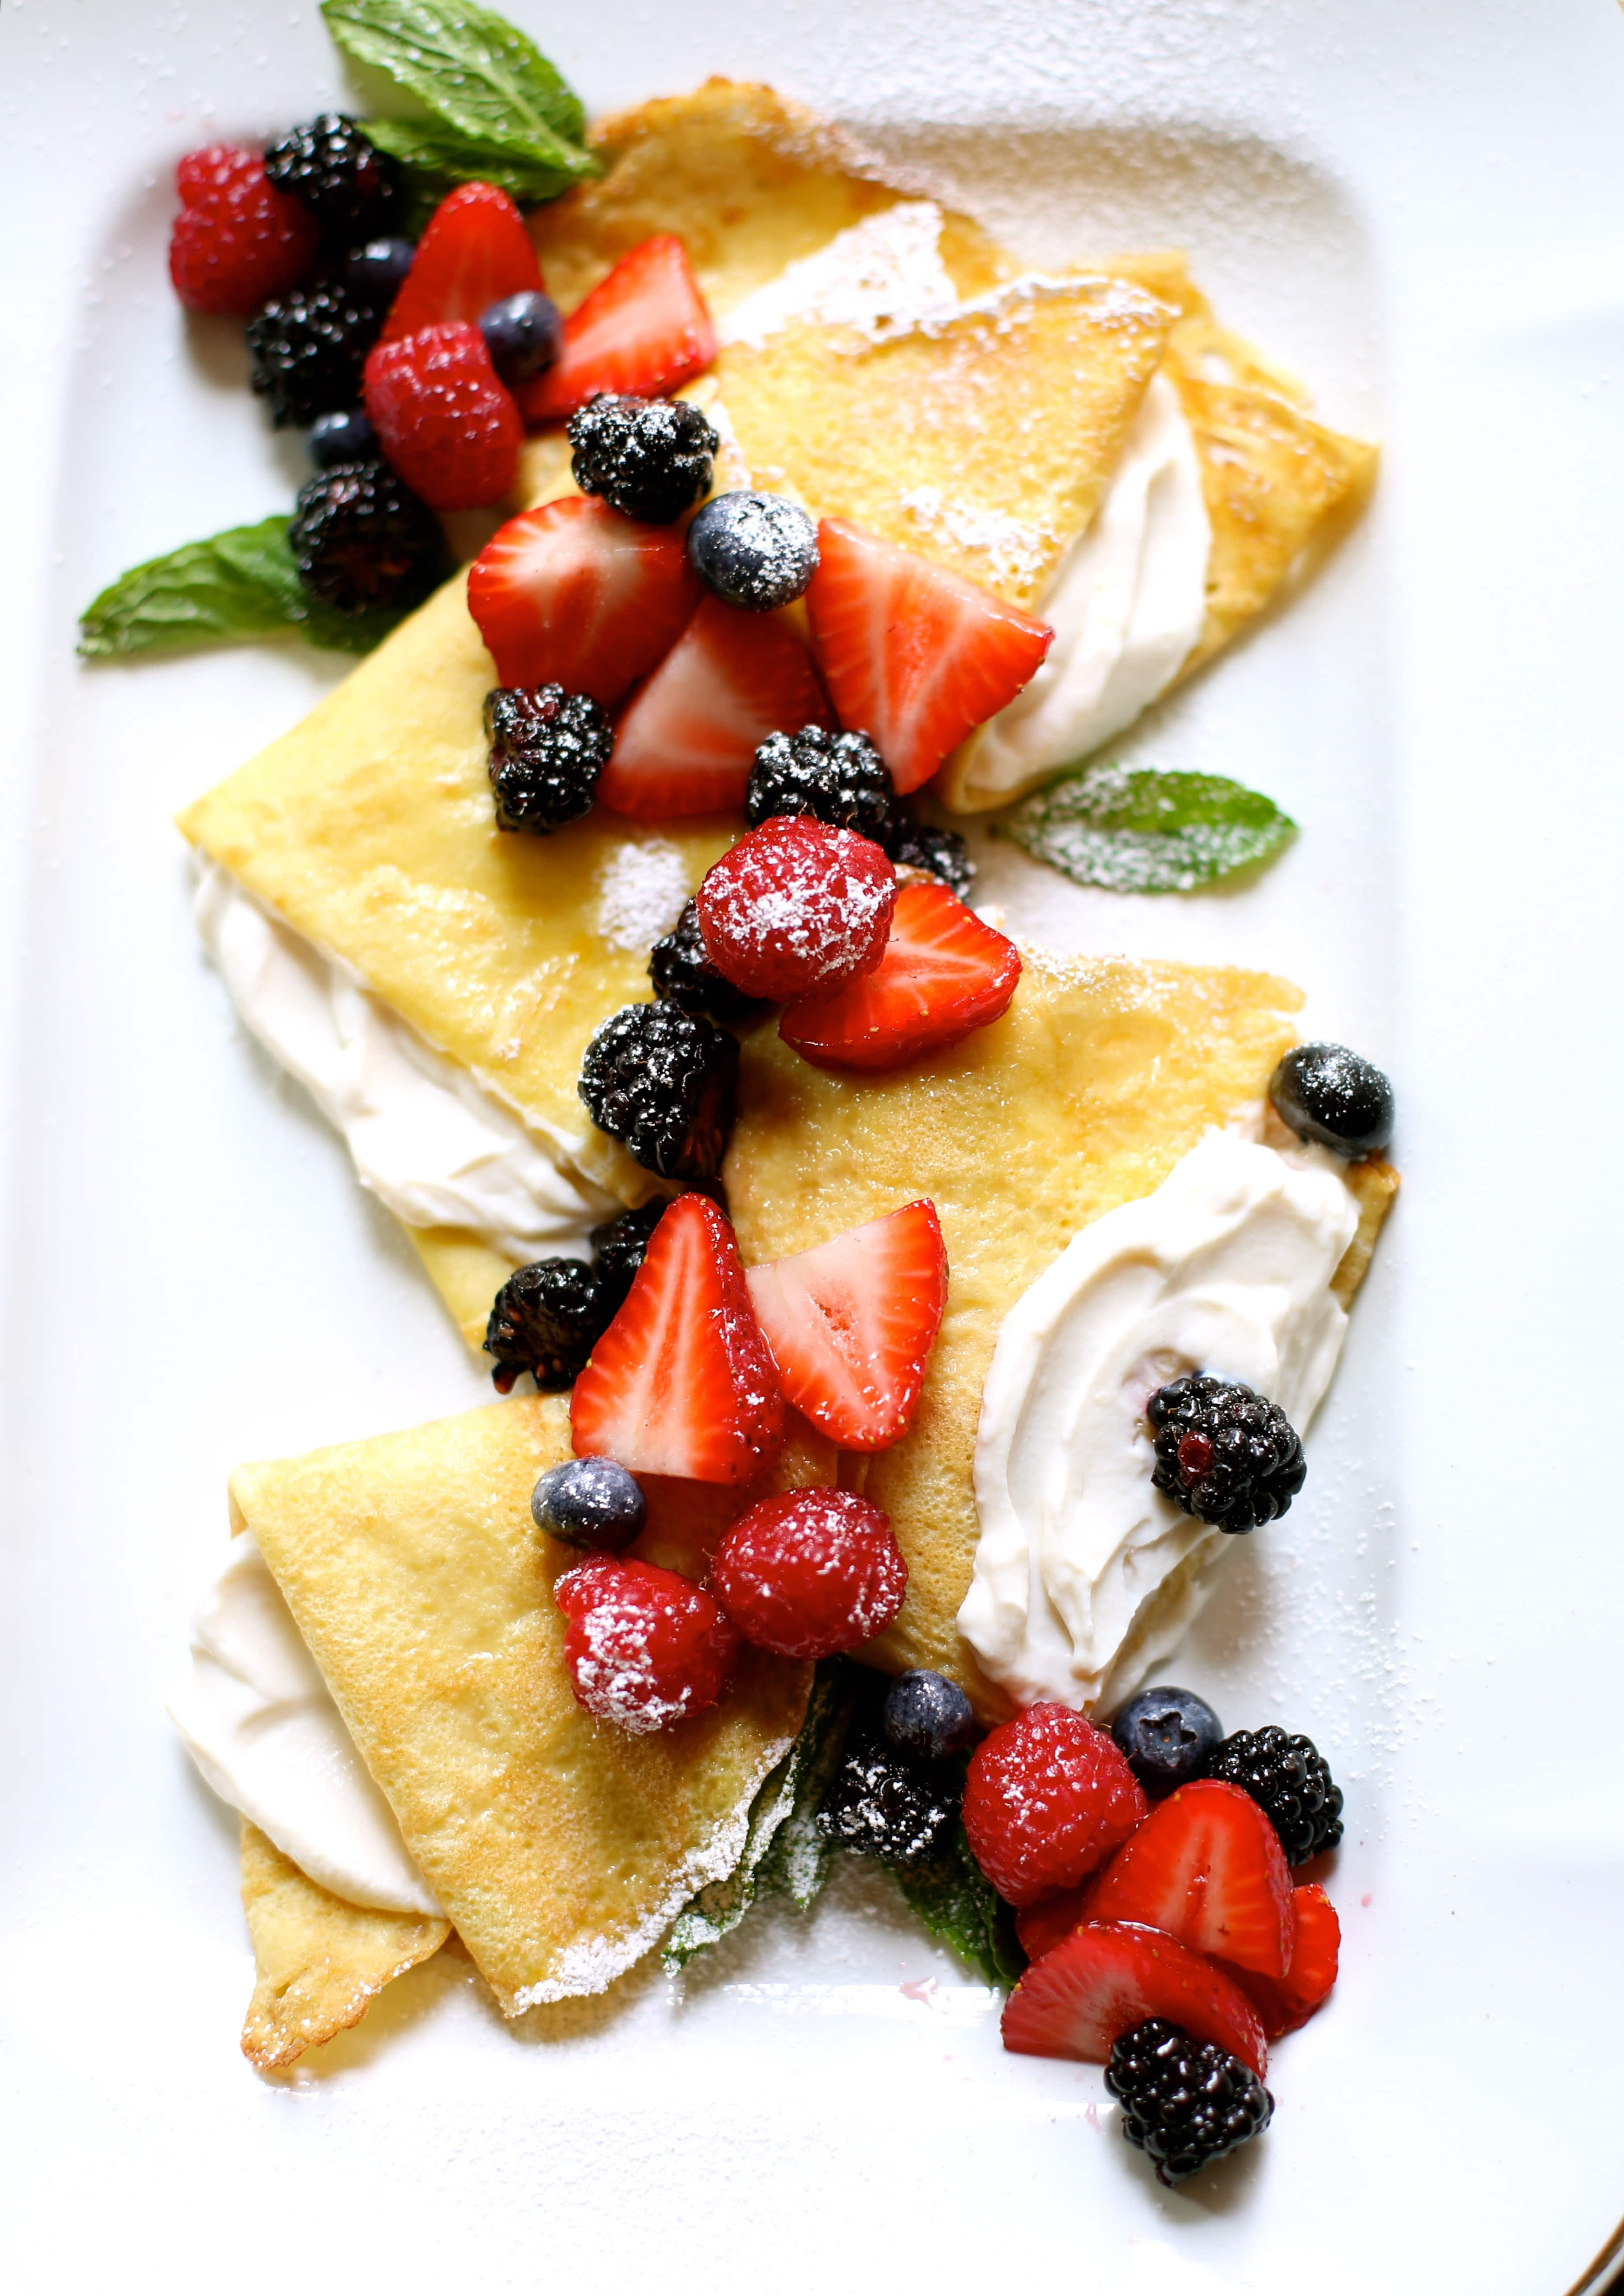 Fresh Berry Crepes with Whipped Ricotta Cheese - Studio Delicious